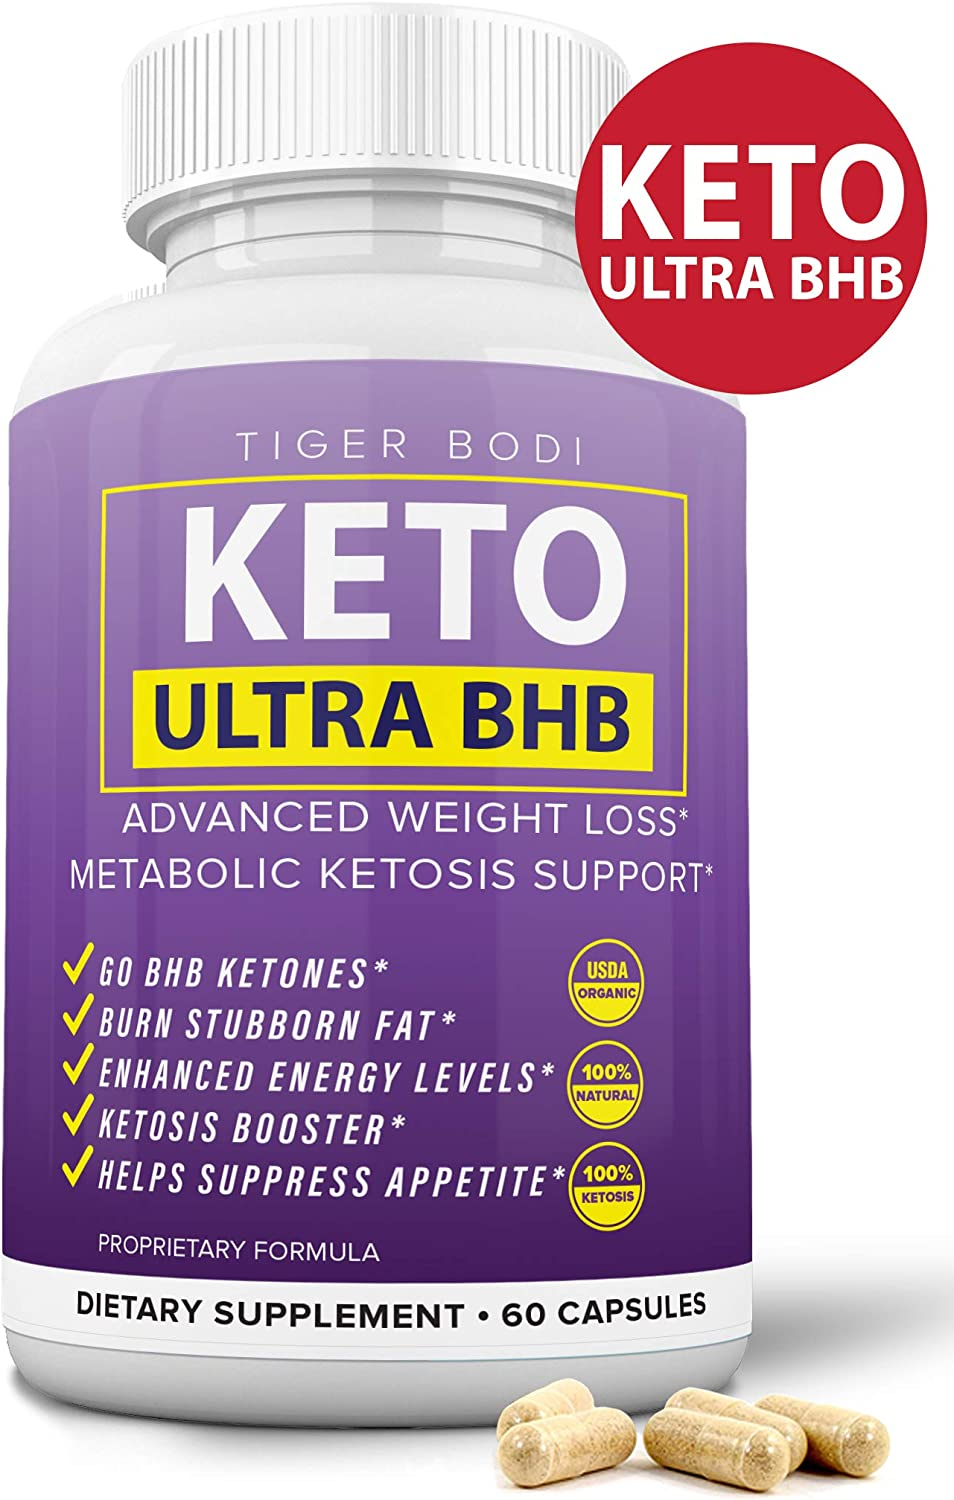 Keto BHB Real Capsules for Weight Loss, Keto 800 BHB Pills for Real Energy, Focus, Metabolism Boost - Premium Advanced Powder Exogenous Ketones for Rapid Ketosis Diet for Men Women